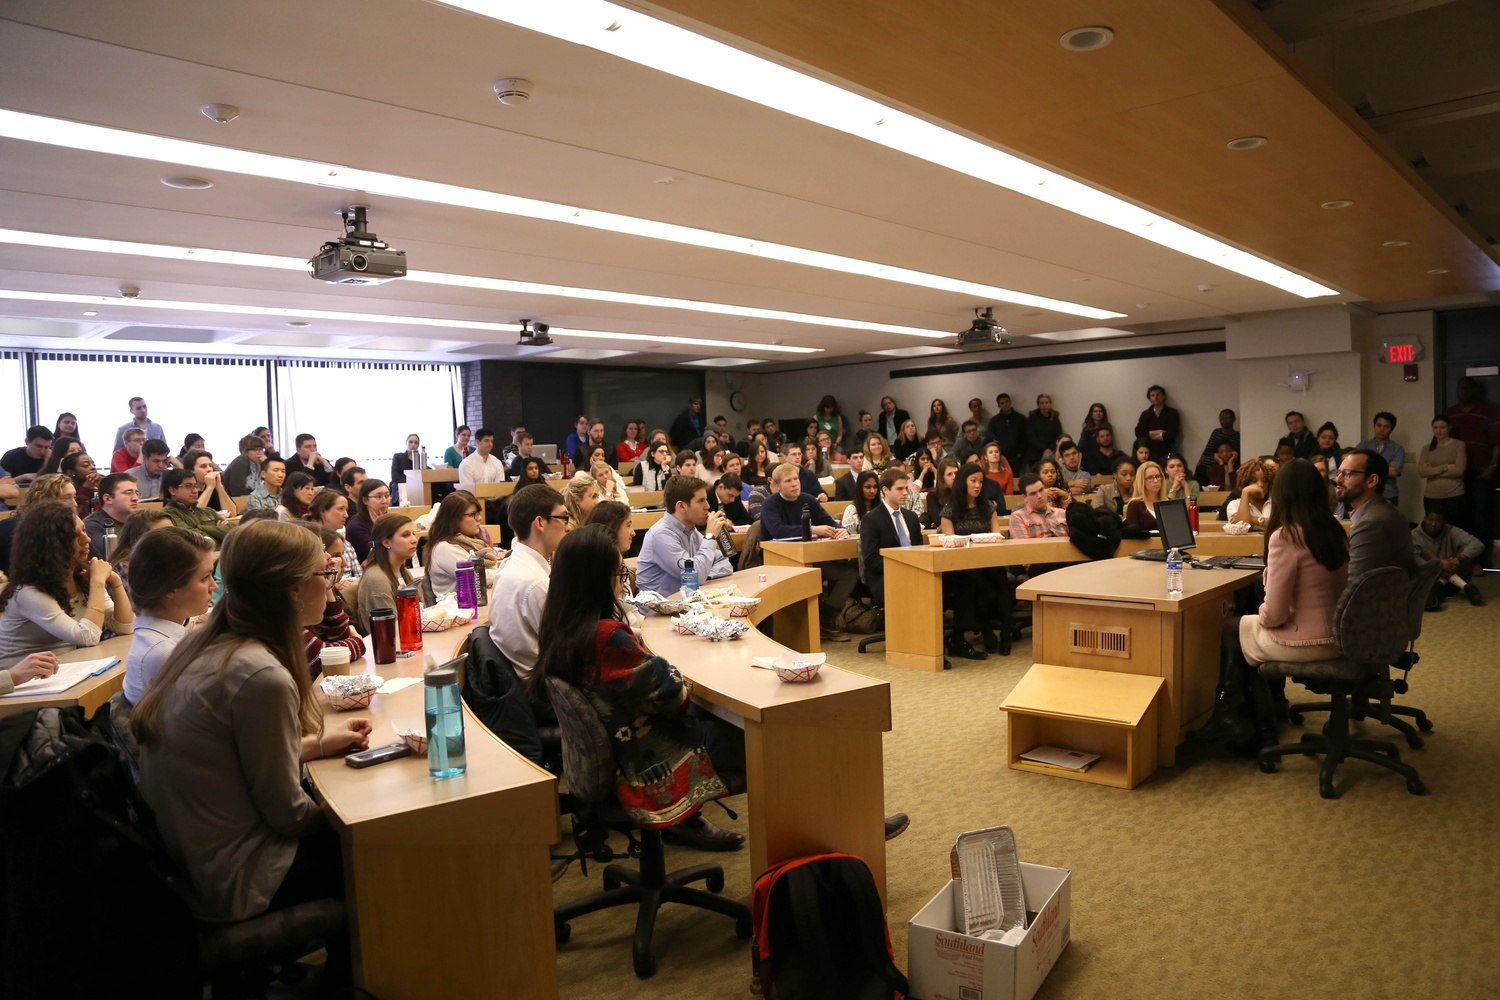 At a panel event in early February, Harvard Law School professor Jeannie C. Suk argued that law classes should teach rape law.